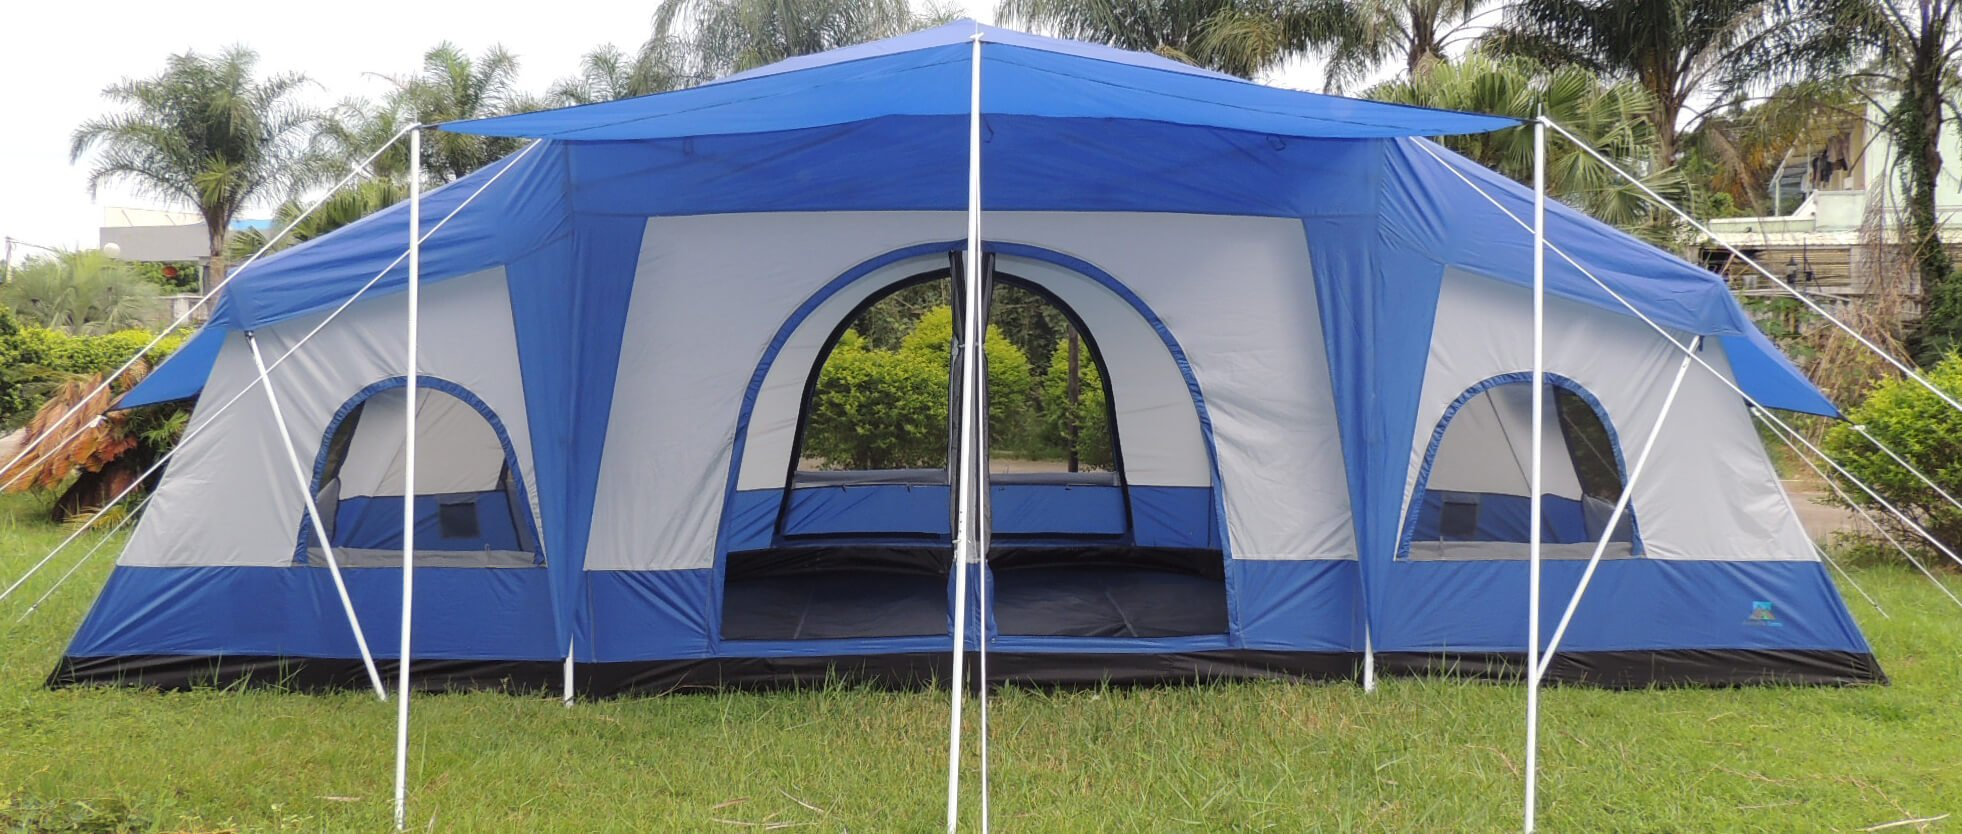 Cabin-Tent-Delux-Four-Room-FrontView